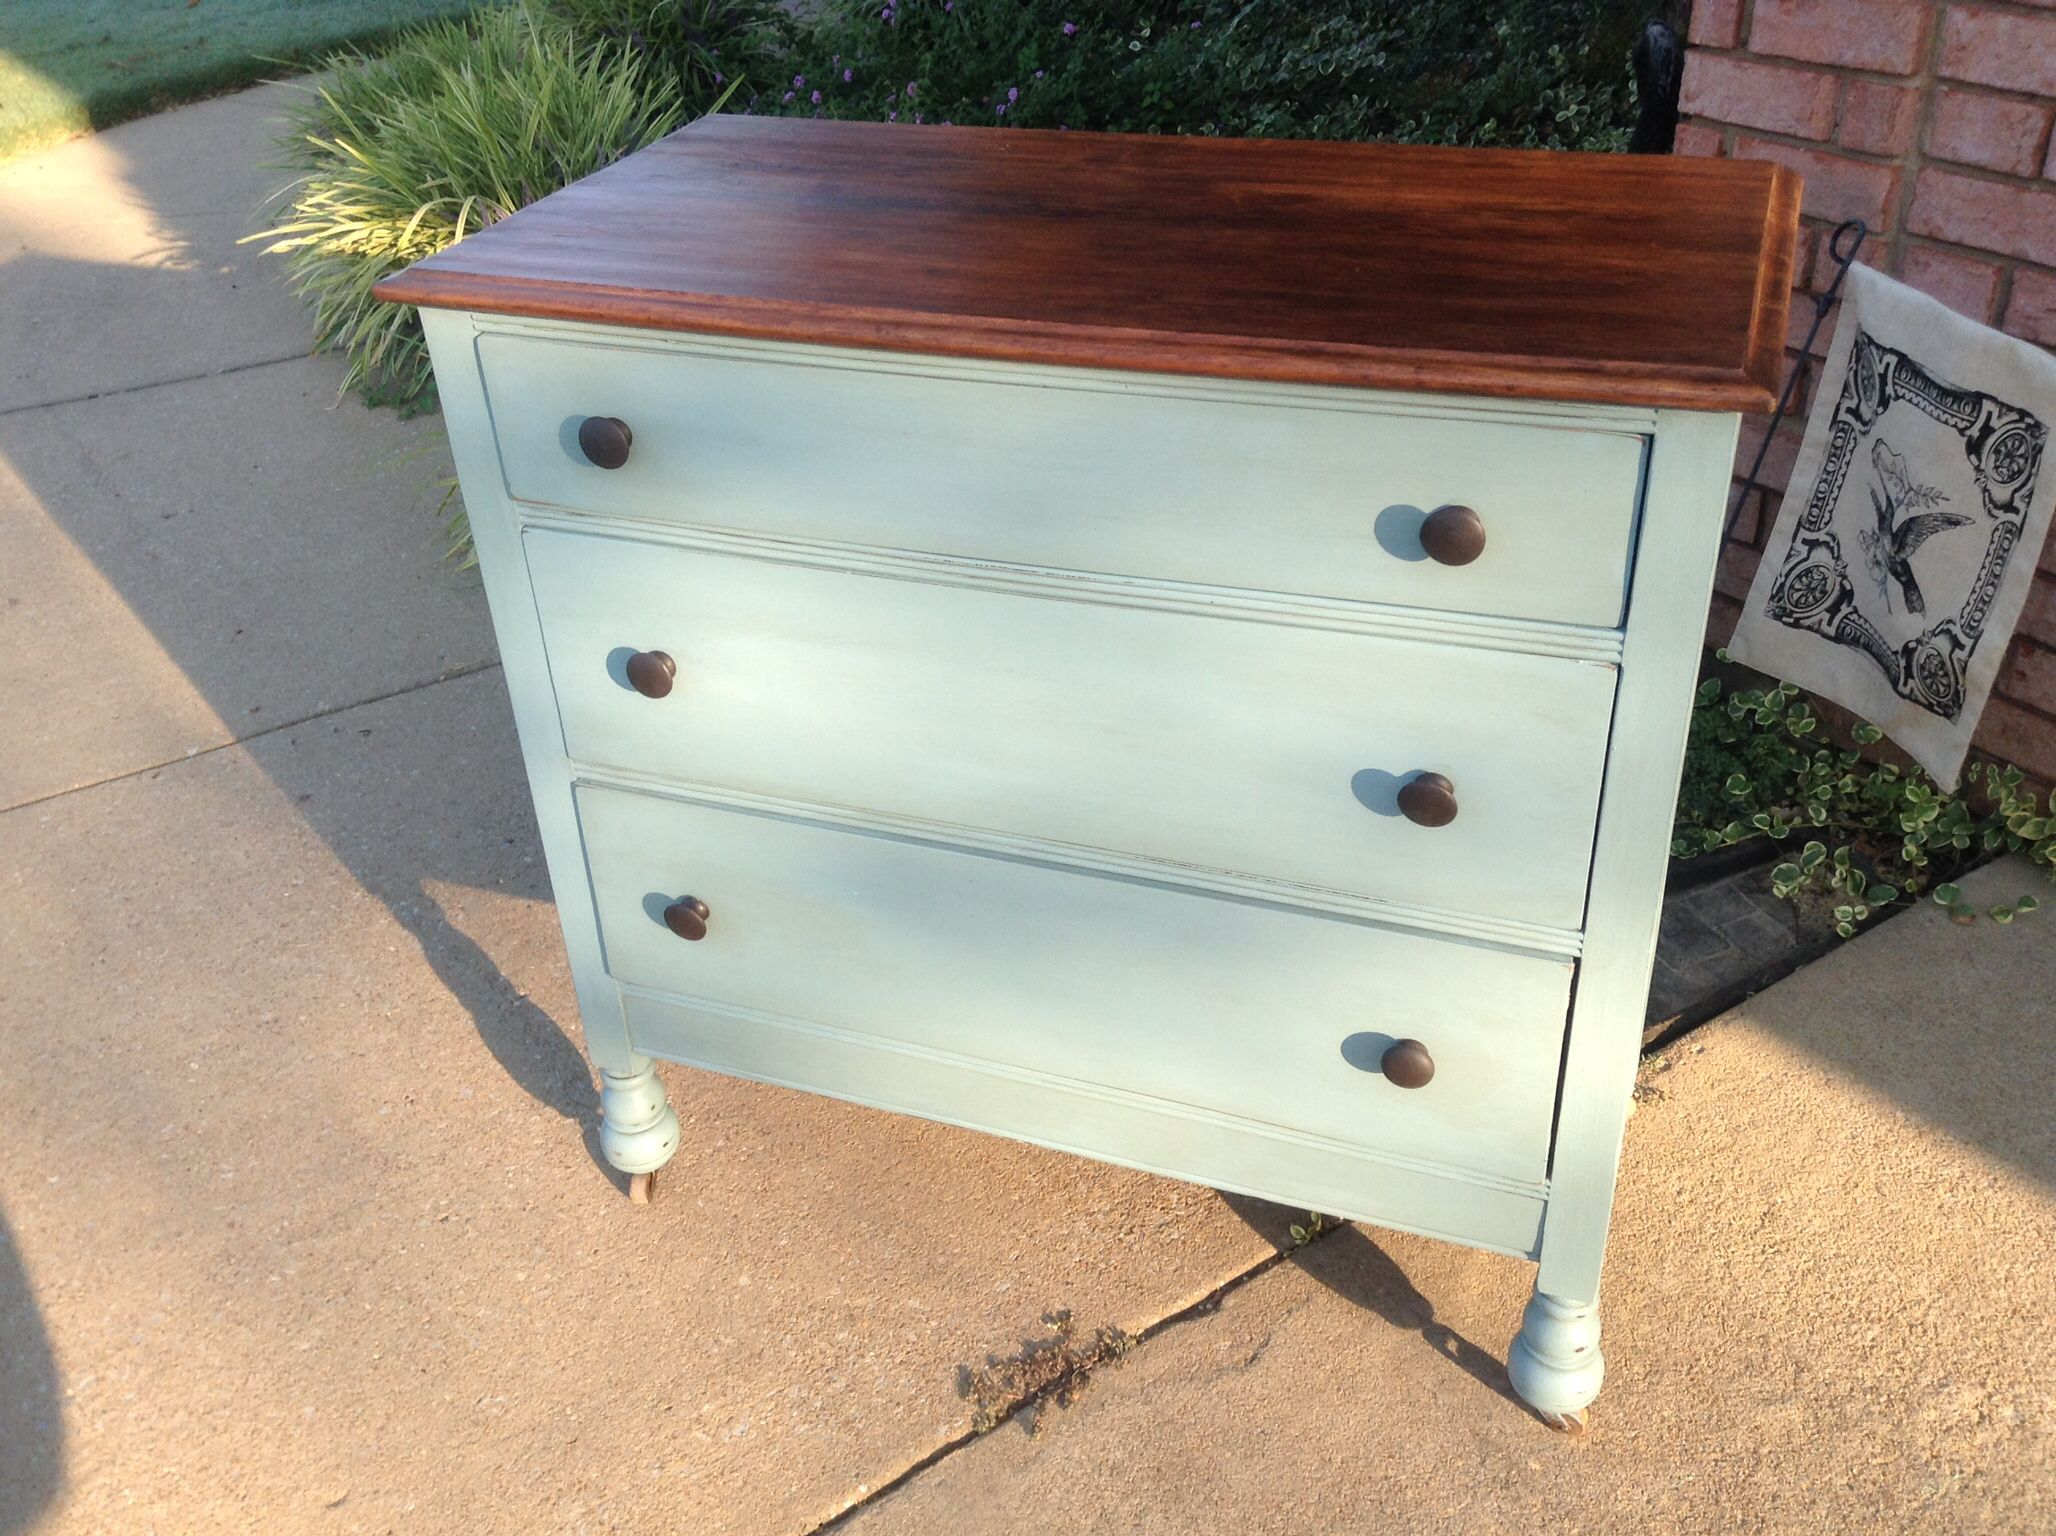 Annie Sloan Chalk Paint custom color by mixing Duck Egg blue with